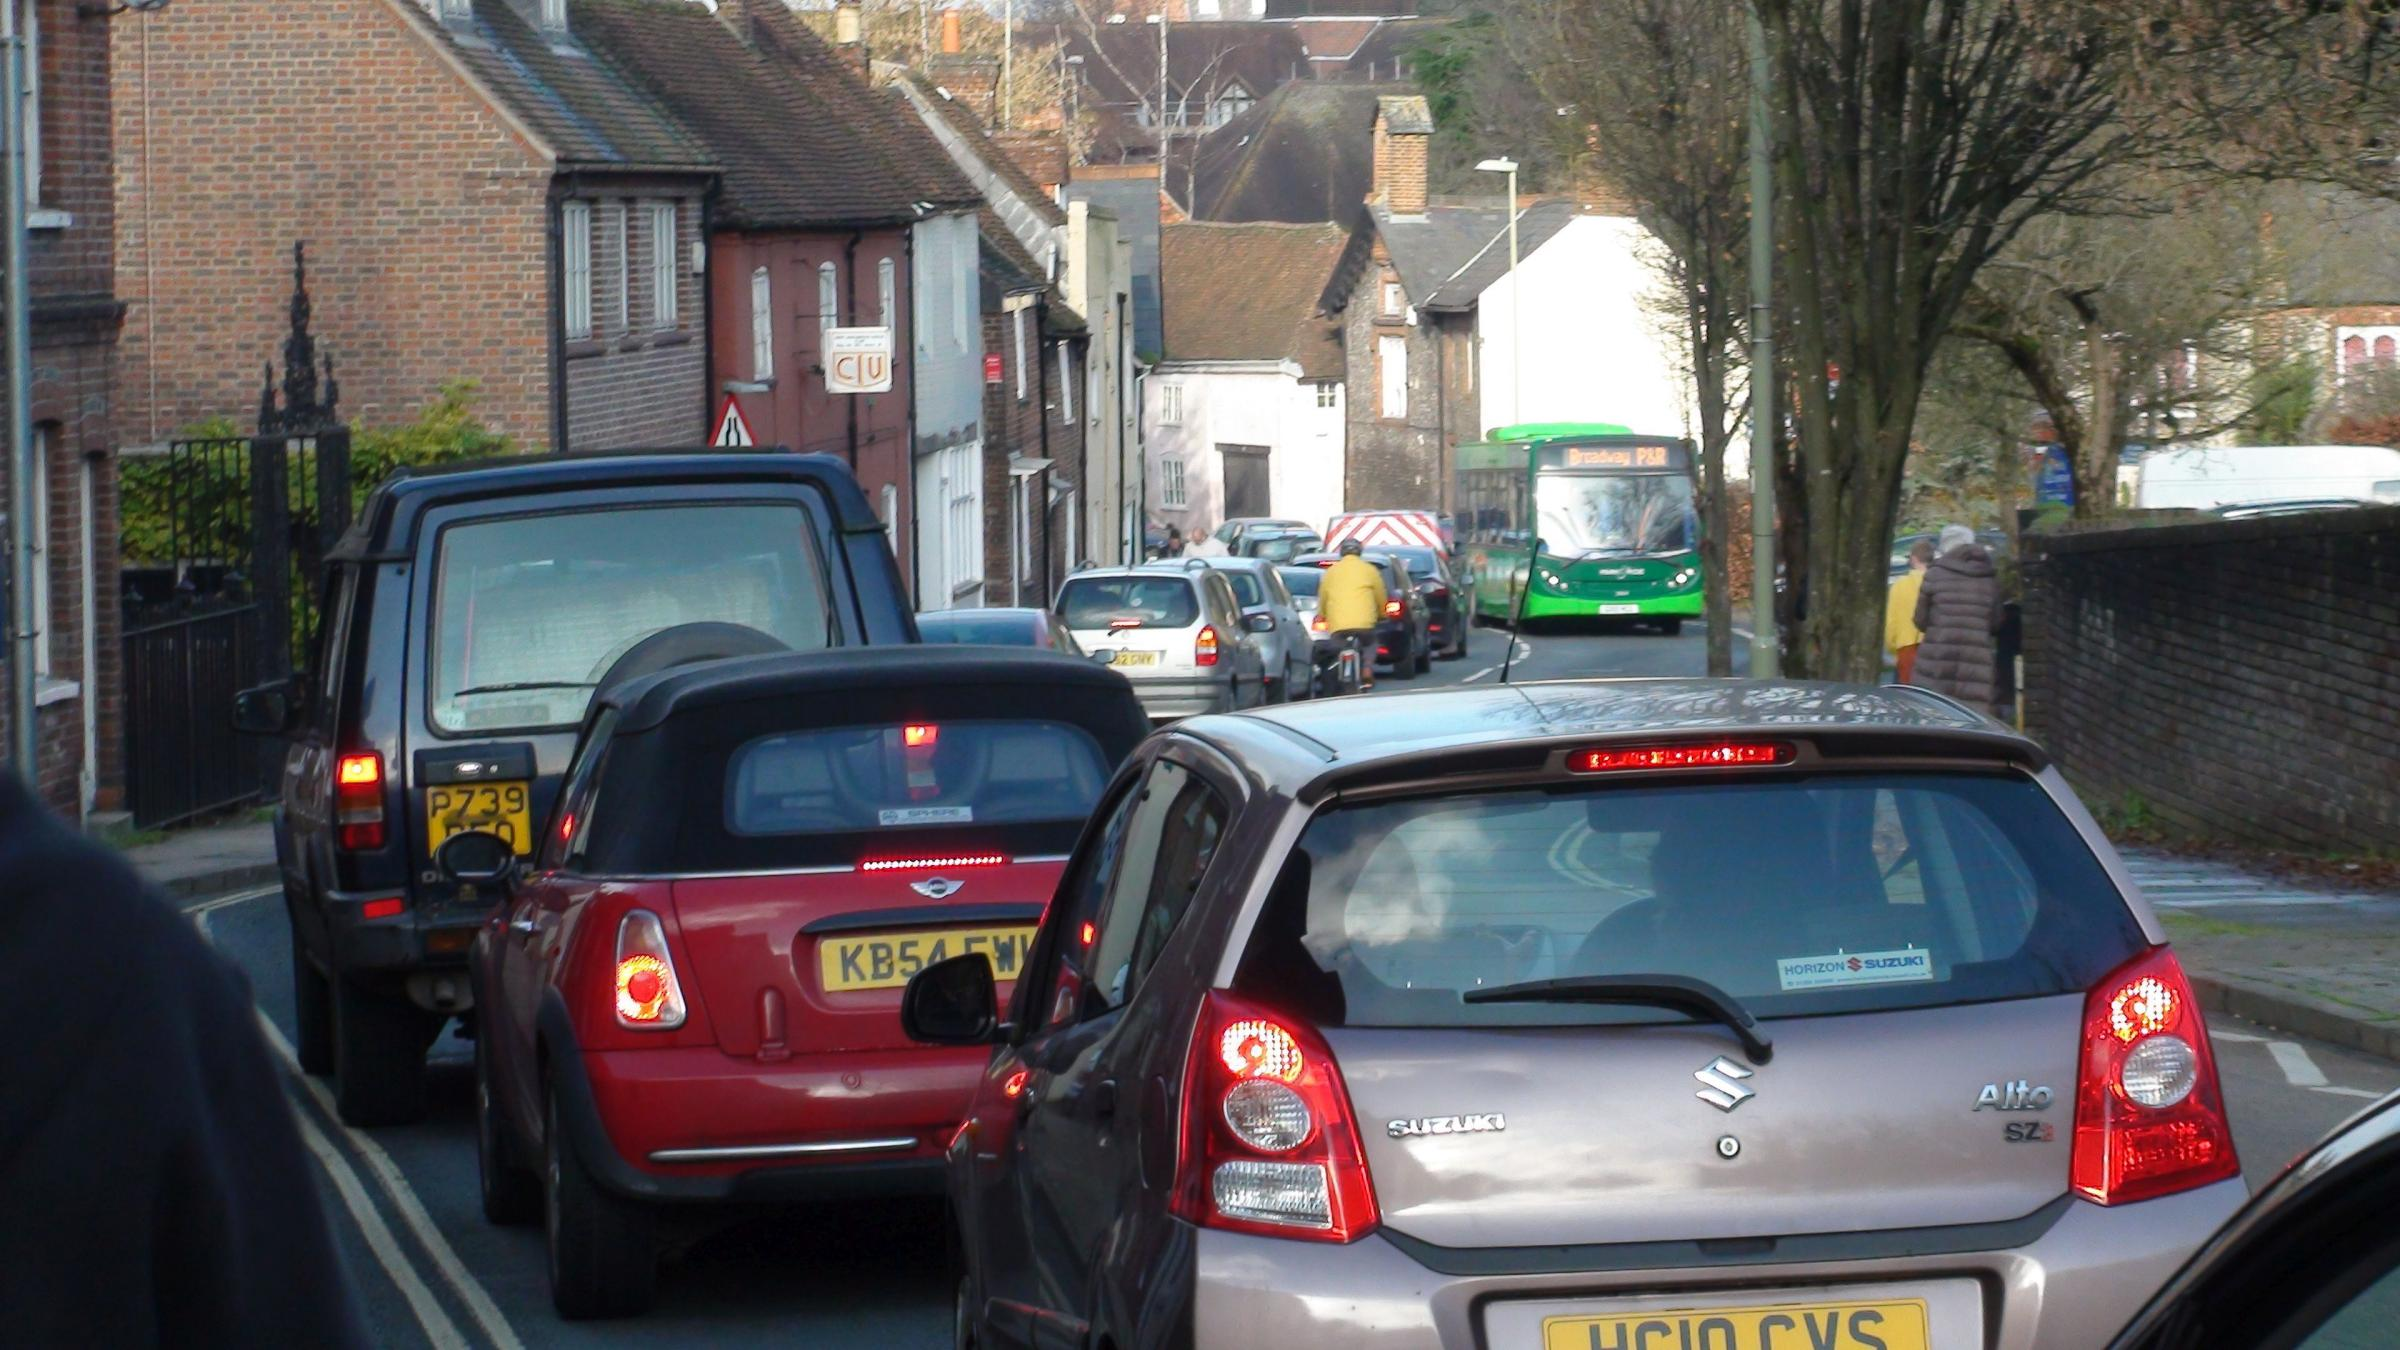 Pollution from traffic in Chesil Street, Winchester.